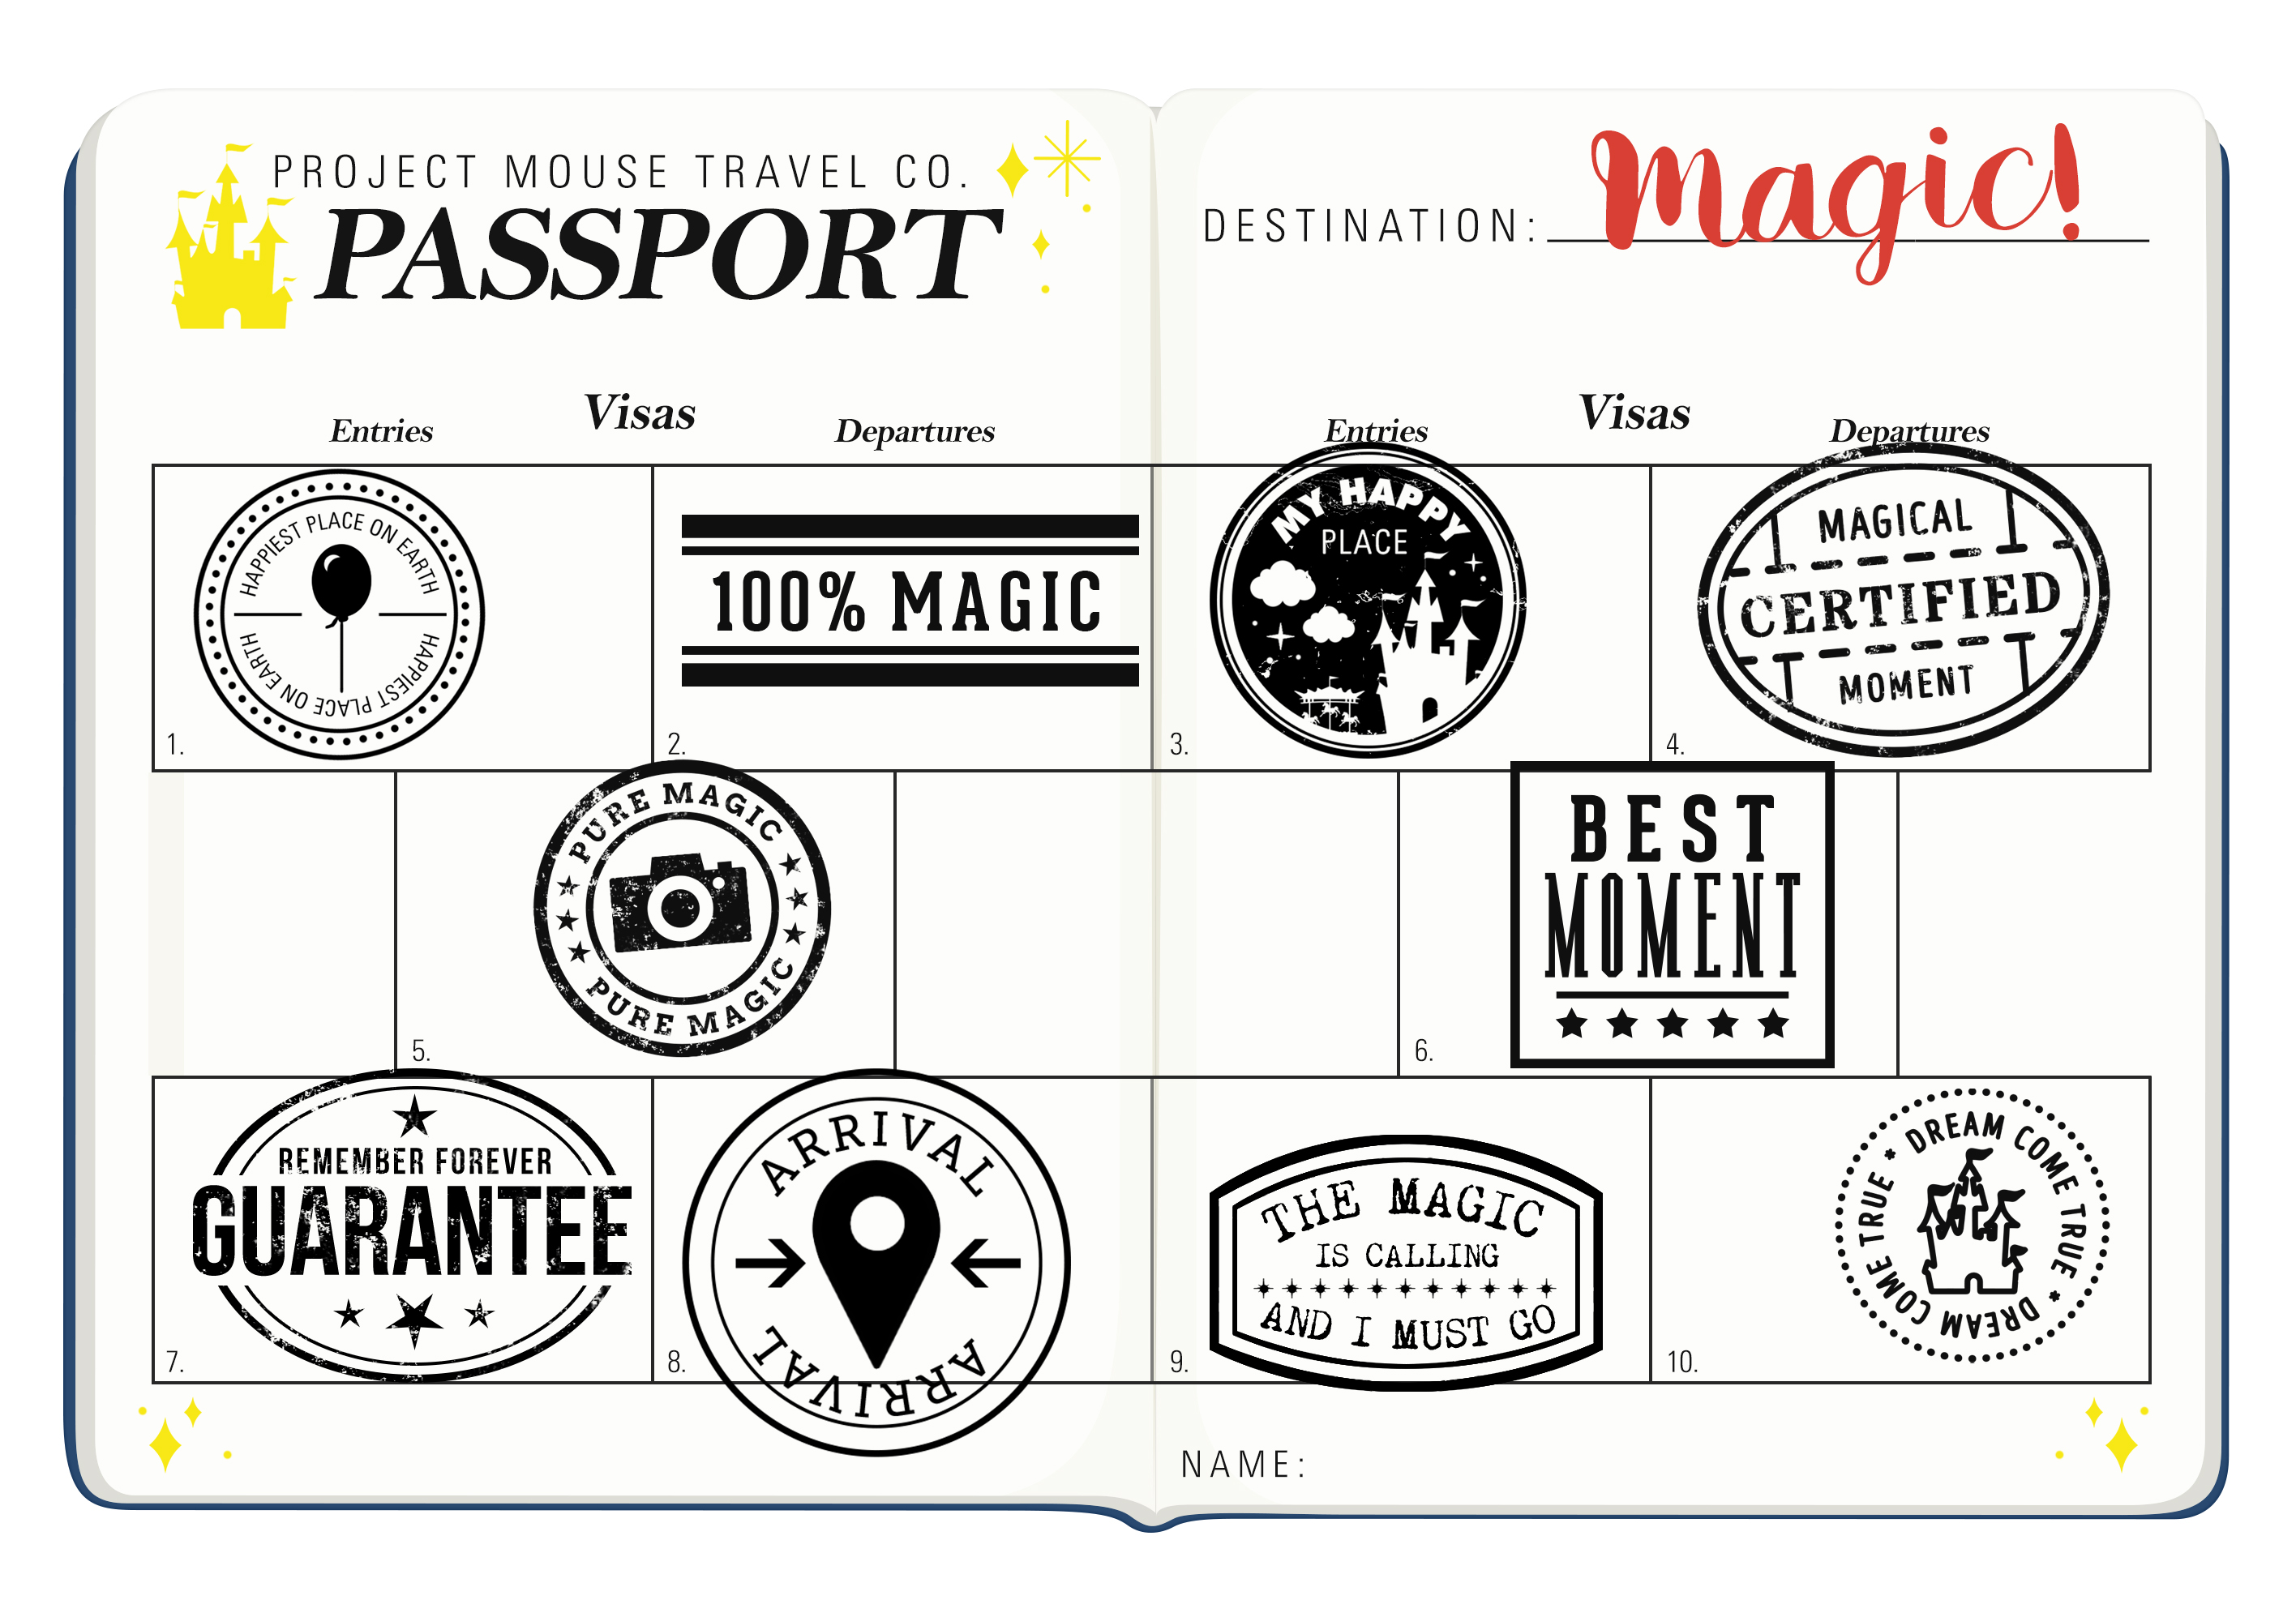 pm_passport with stamps.jpg